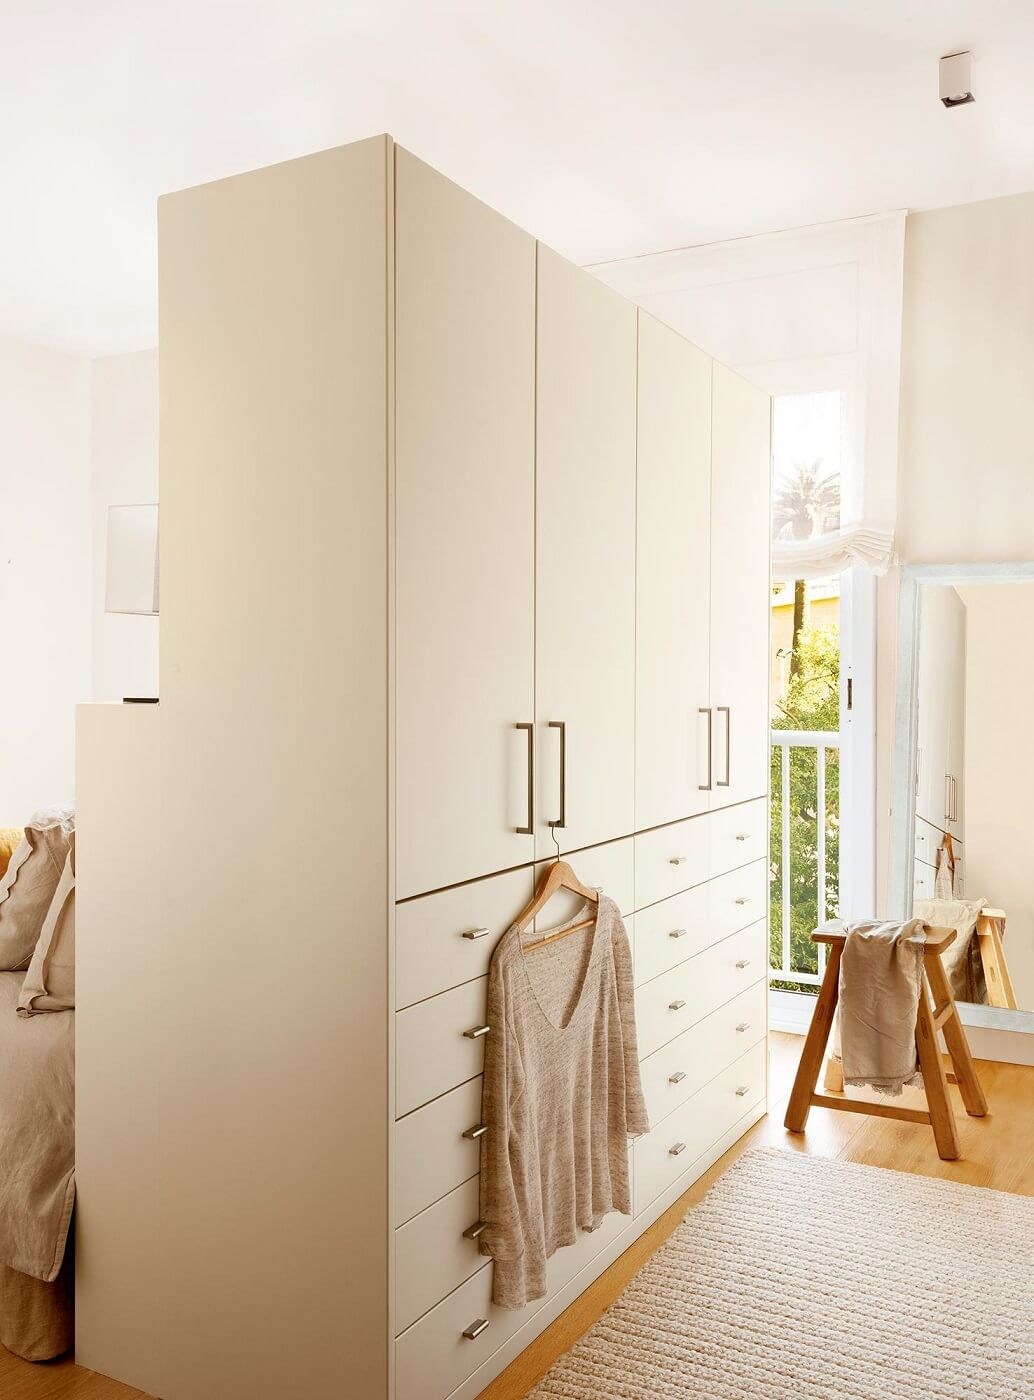 A LARGE WARDROBE THAT INTEGRATES THE HEADBOARD